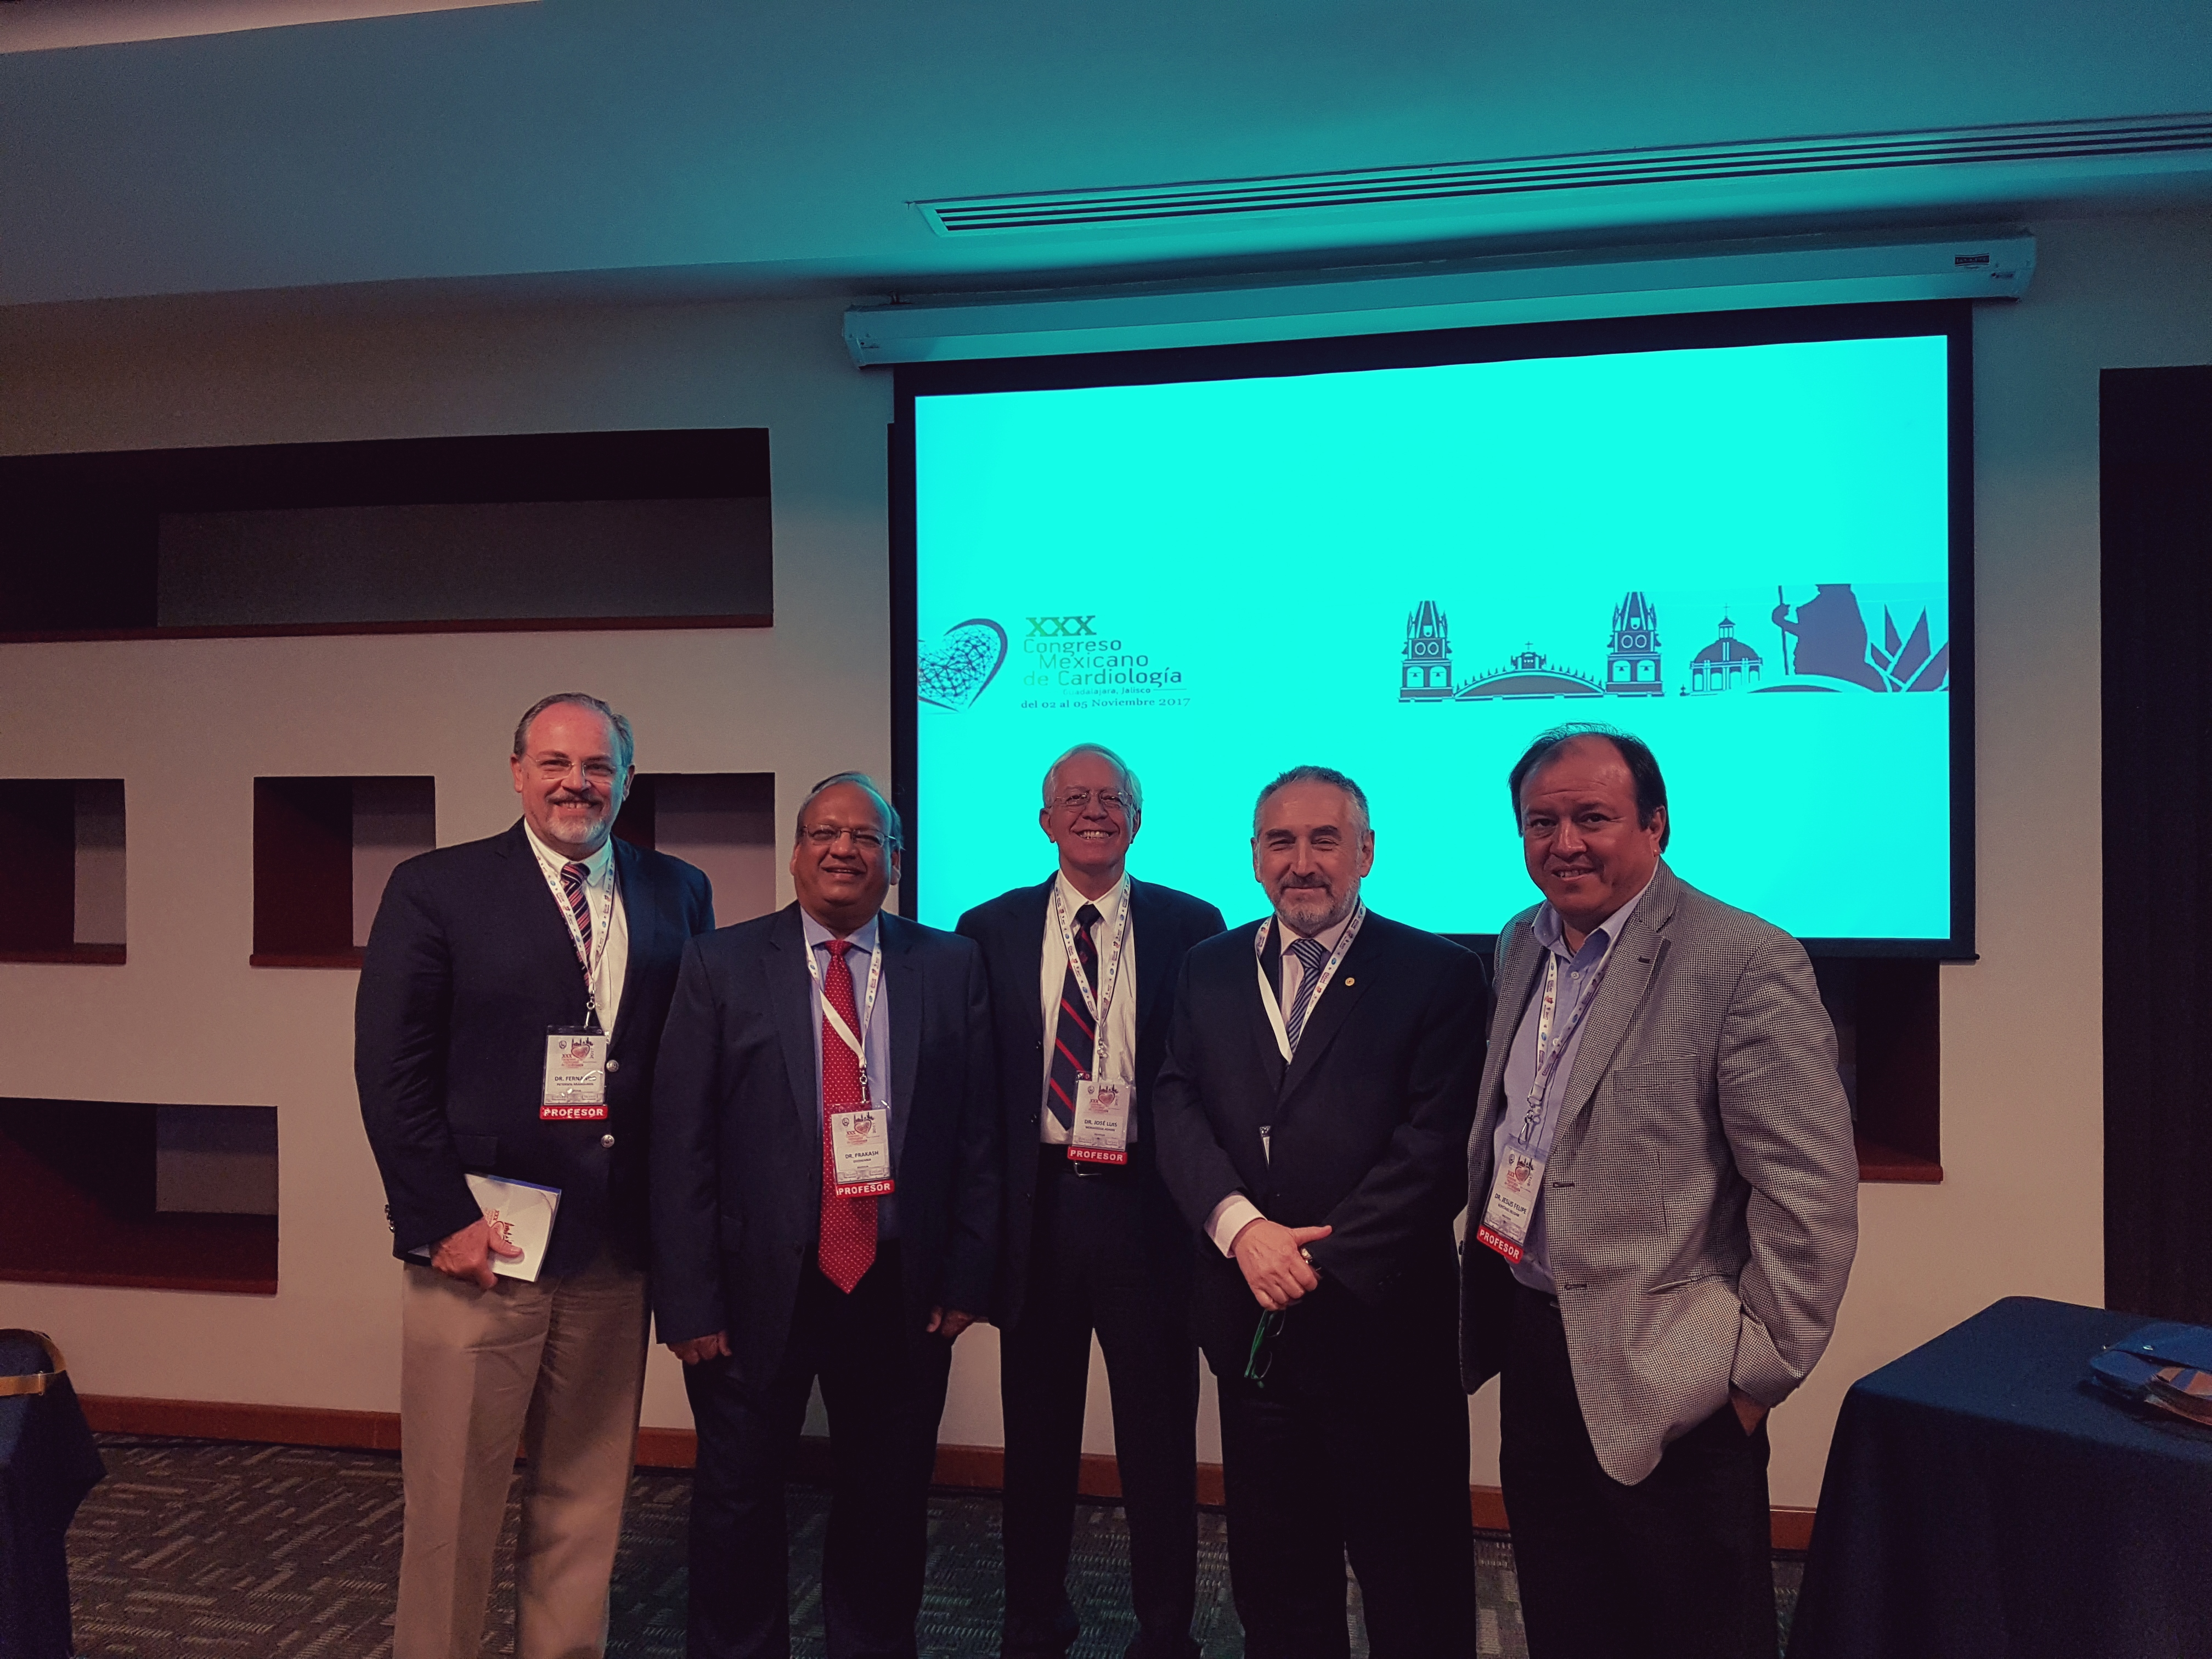 Homemade Mexican Xxx in whf attends the 30th mexican congress of cardiology - world heart